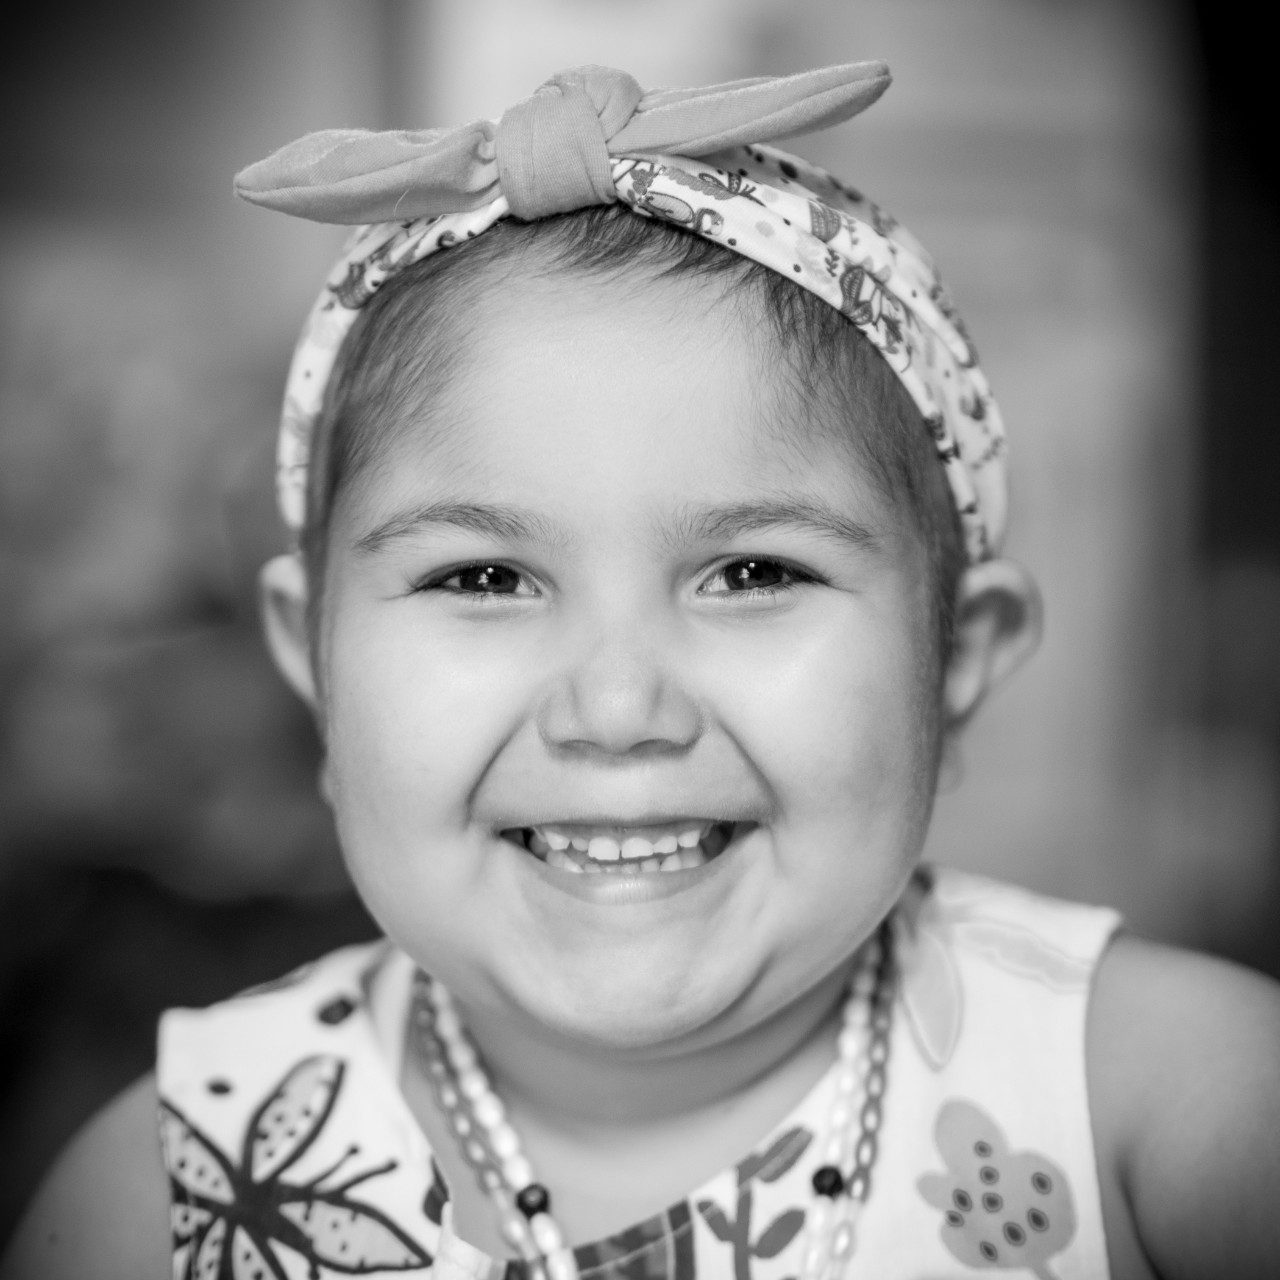 Kloe Ponce, childhood brain tumor survivor